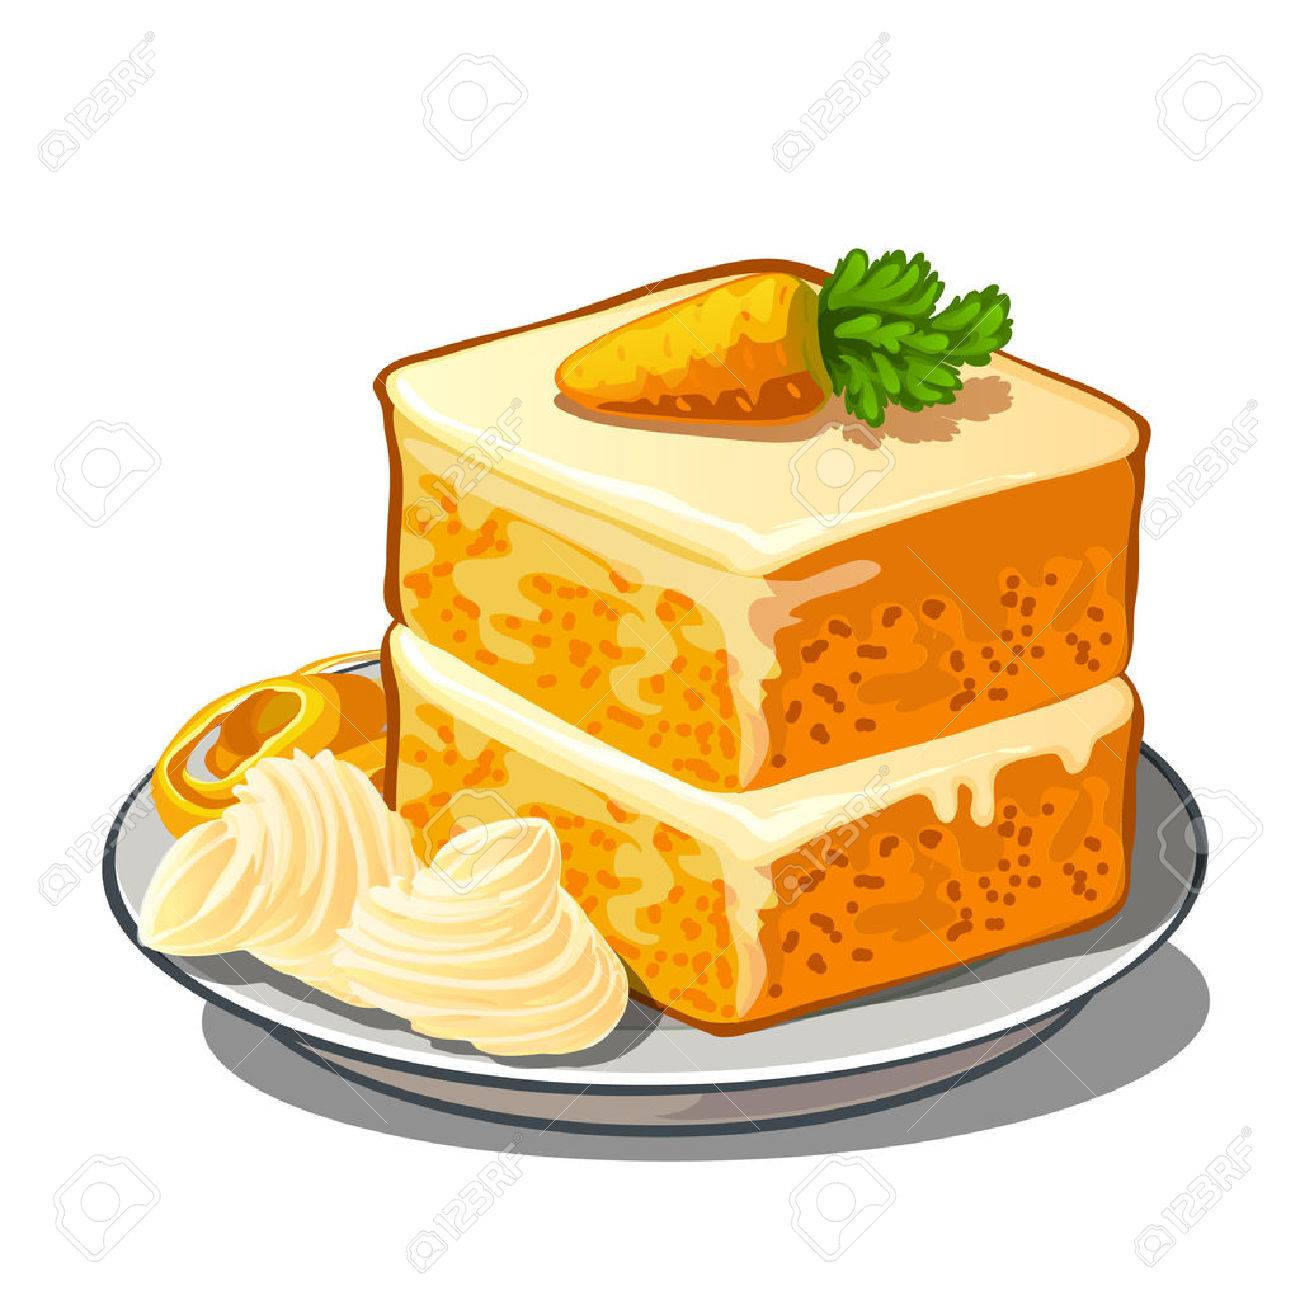 Carrot cake clipart 1 » Clipart Station.